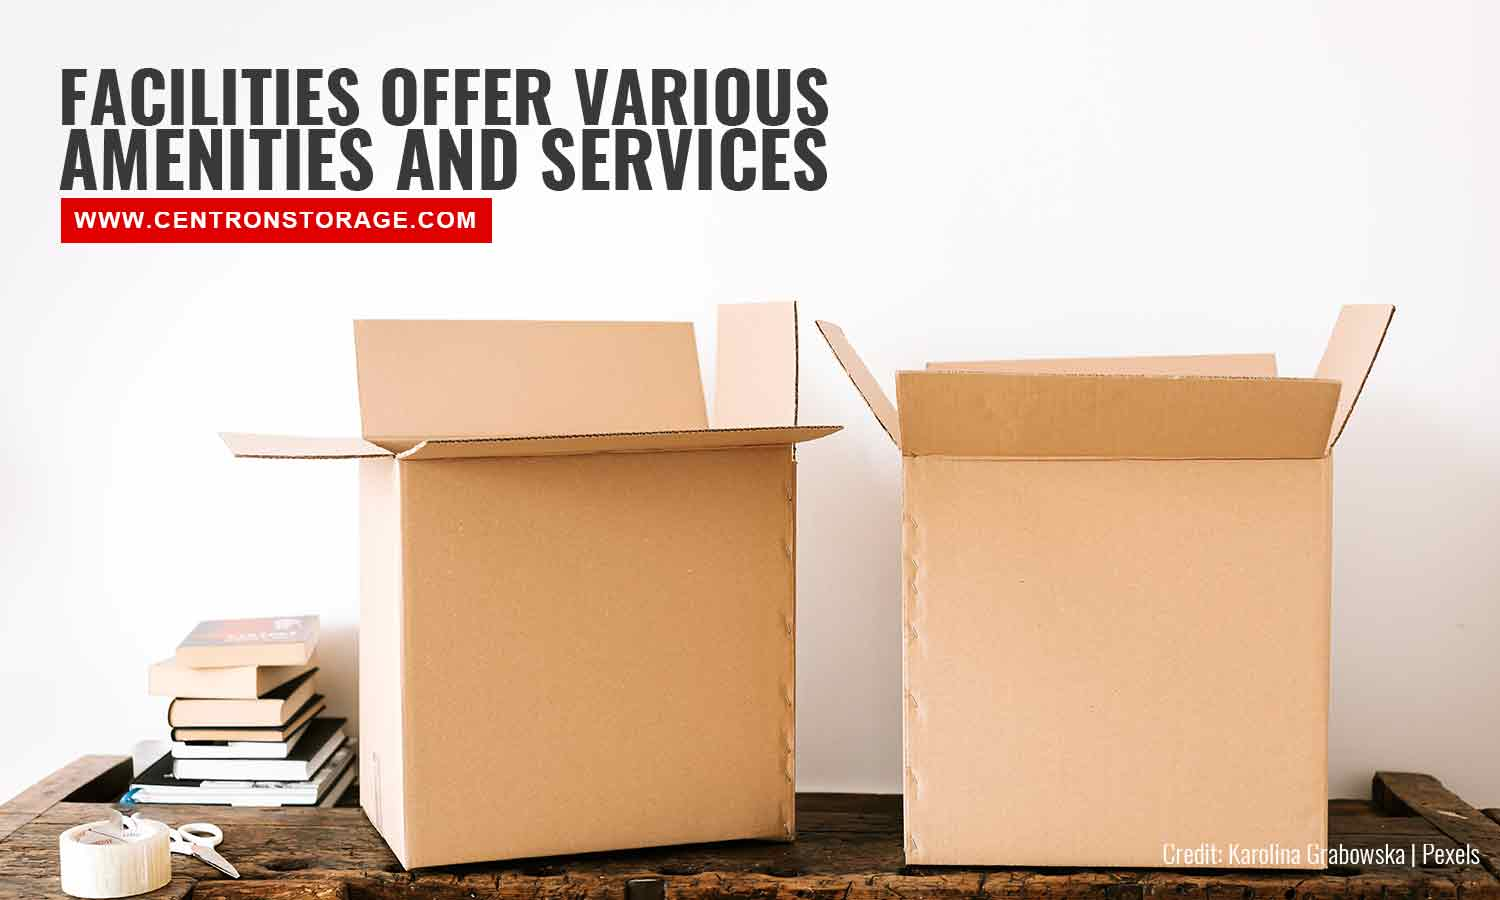 Facilities offer various amenities and services